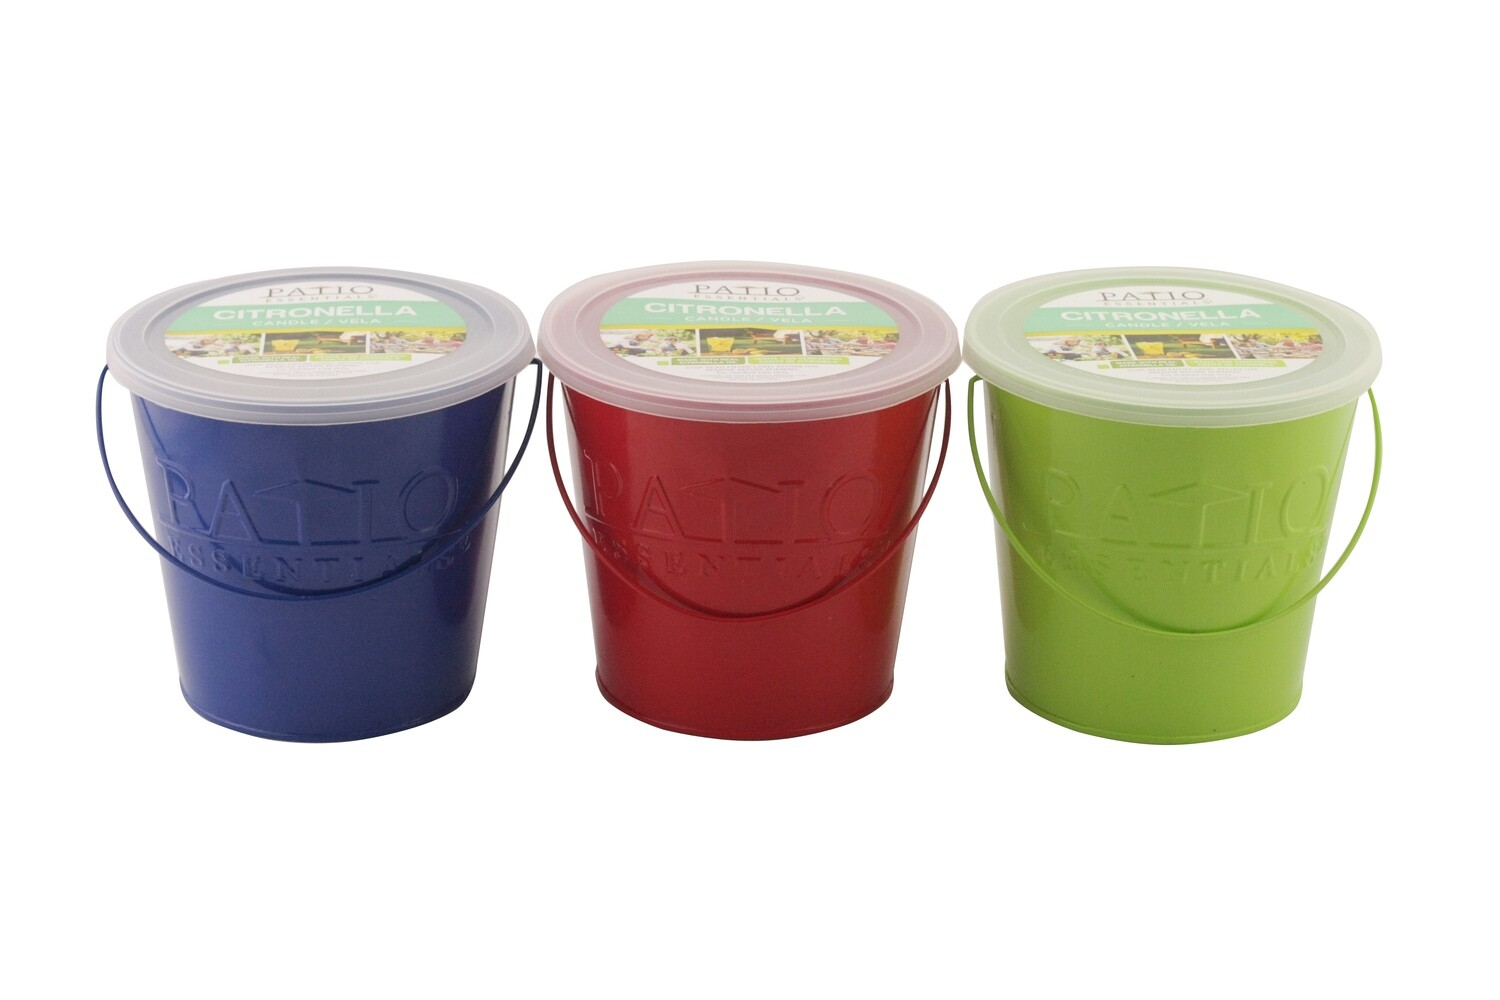 17 OZ Citro Painted Bucket Candle